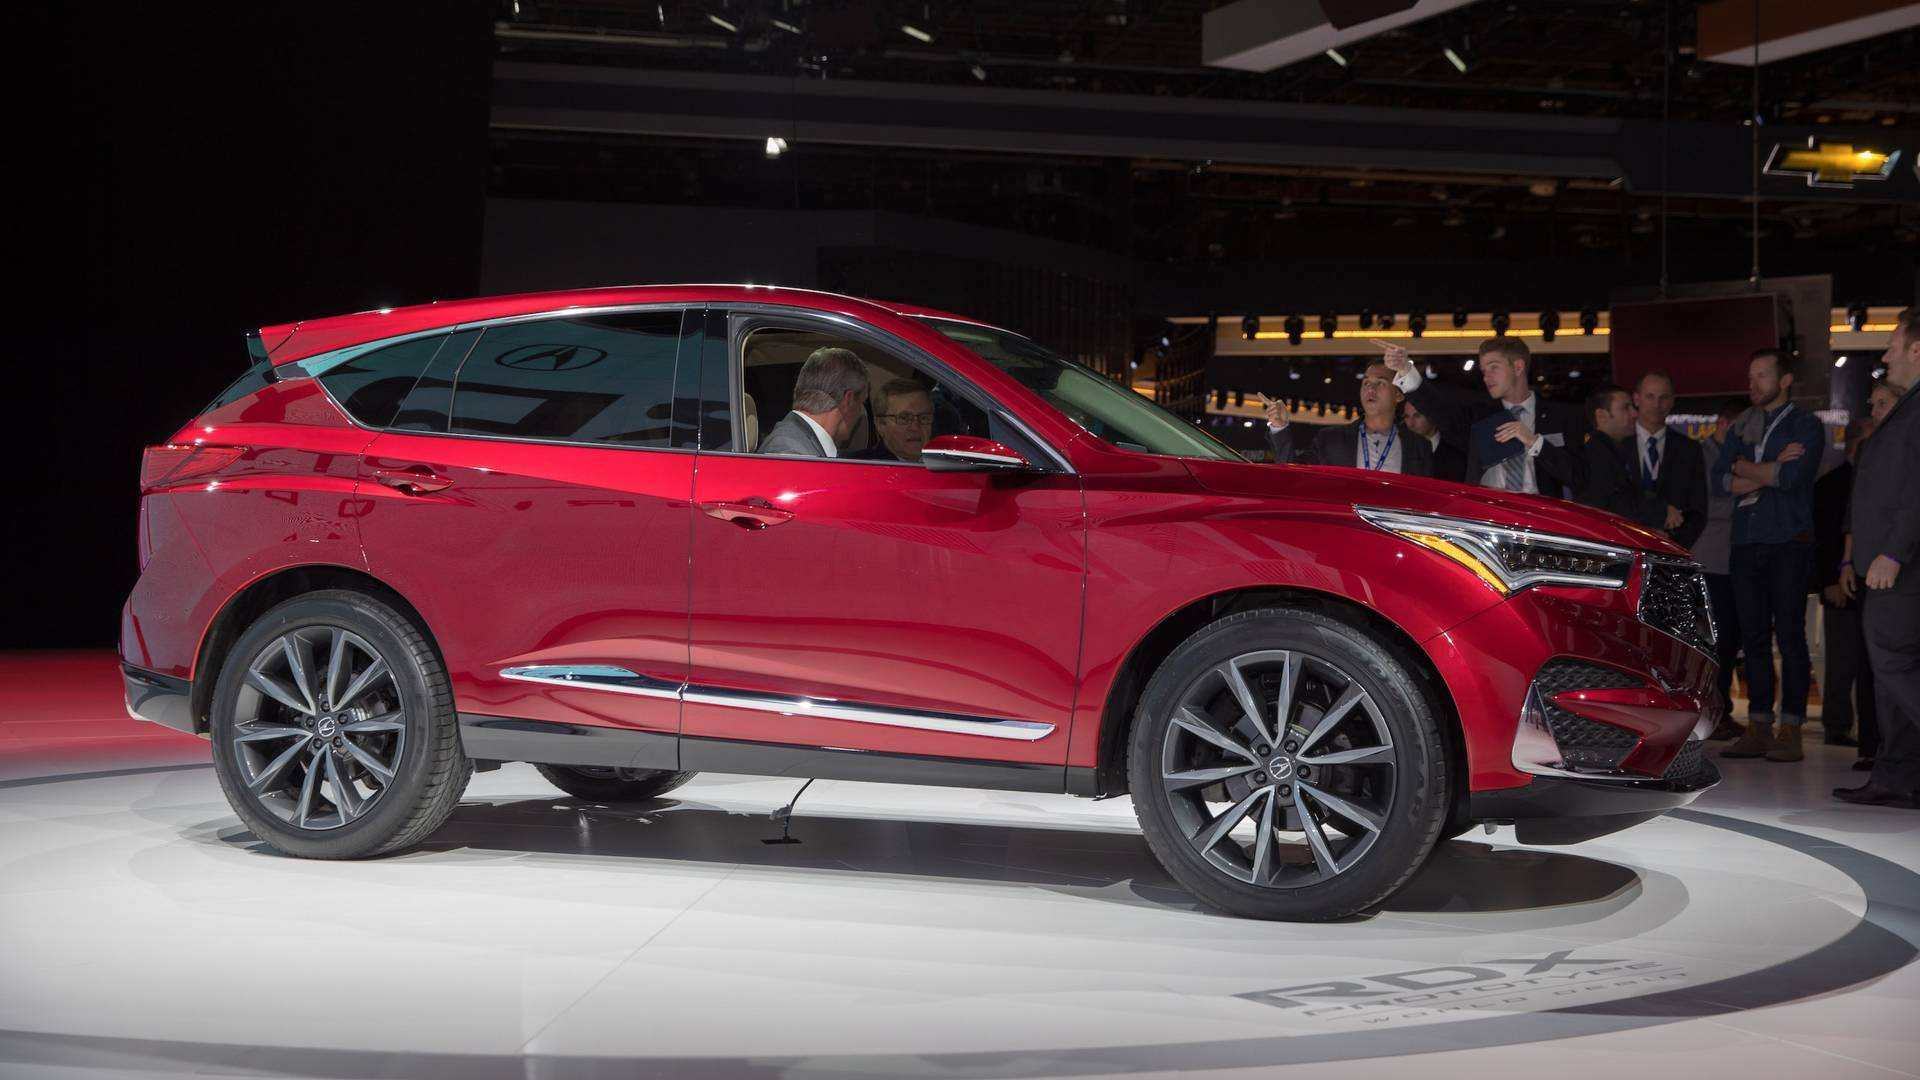 95 Gallery of New Acura Rdx 2019 Option Packages Review And Specs Picture for New Acura Rdx 2019 Option Packages Review And Specs